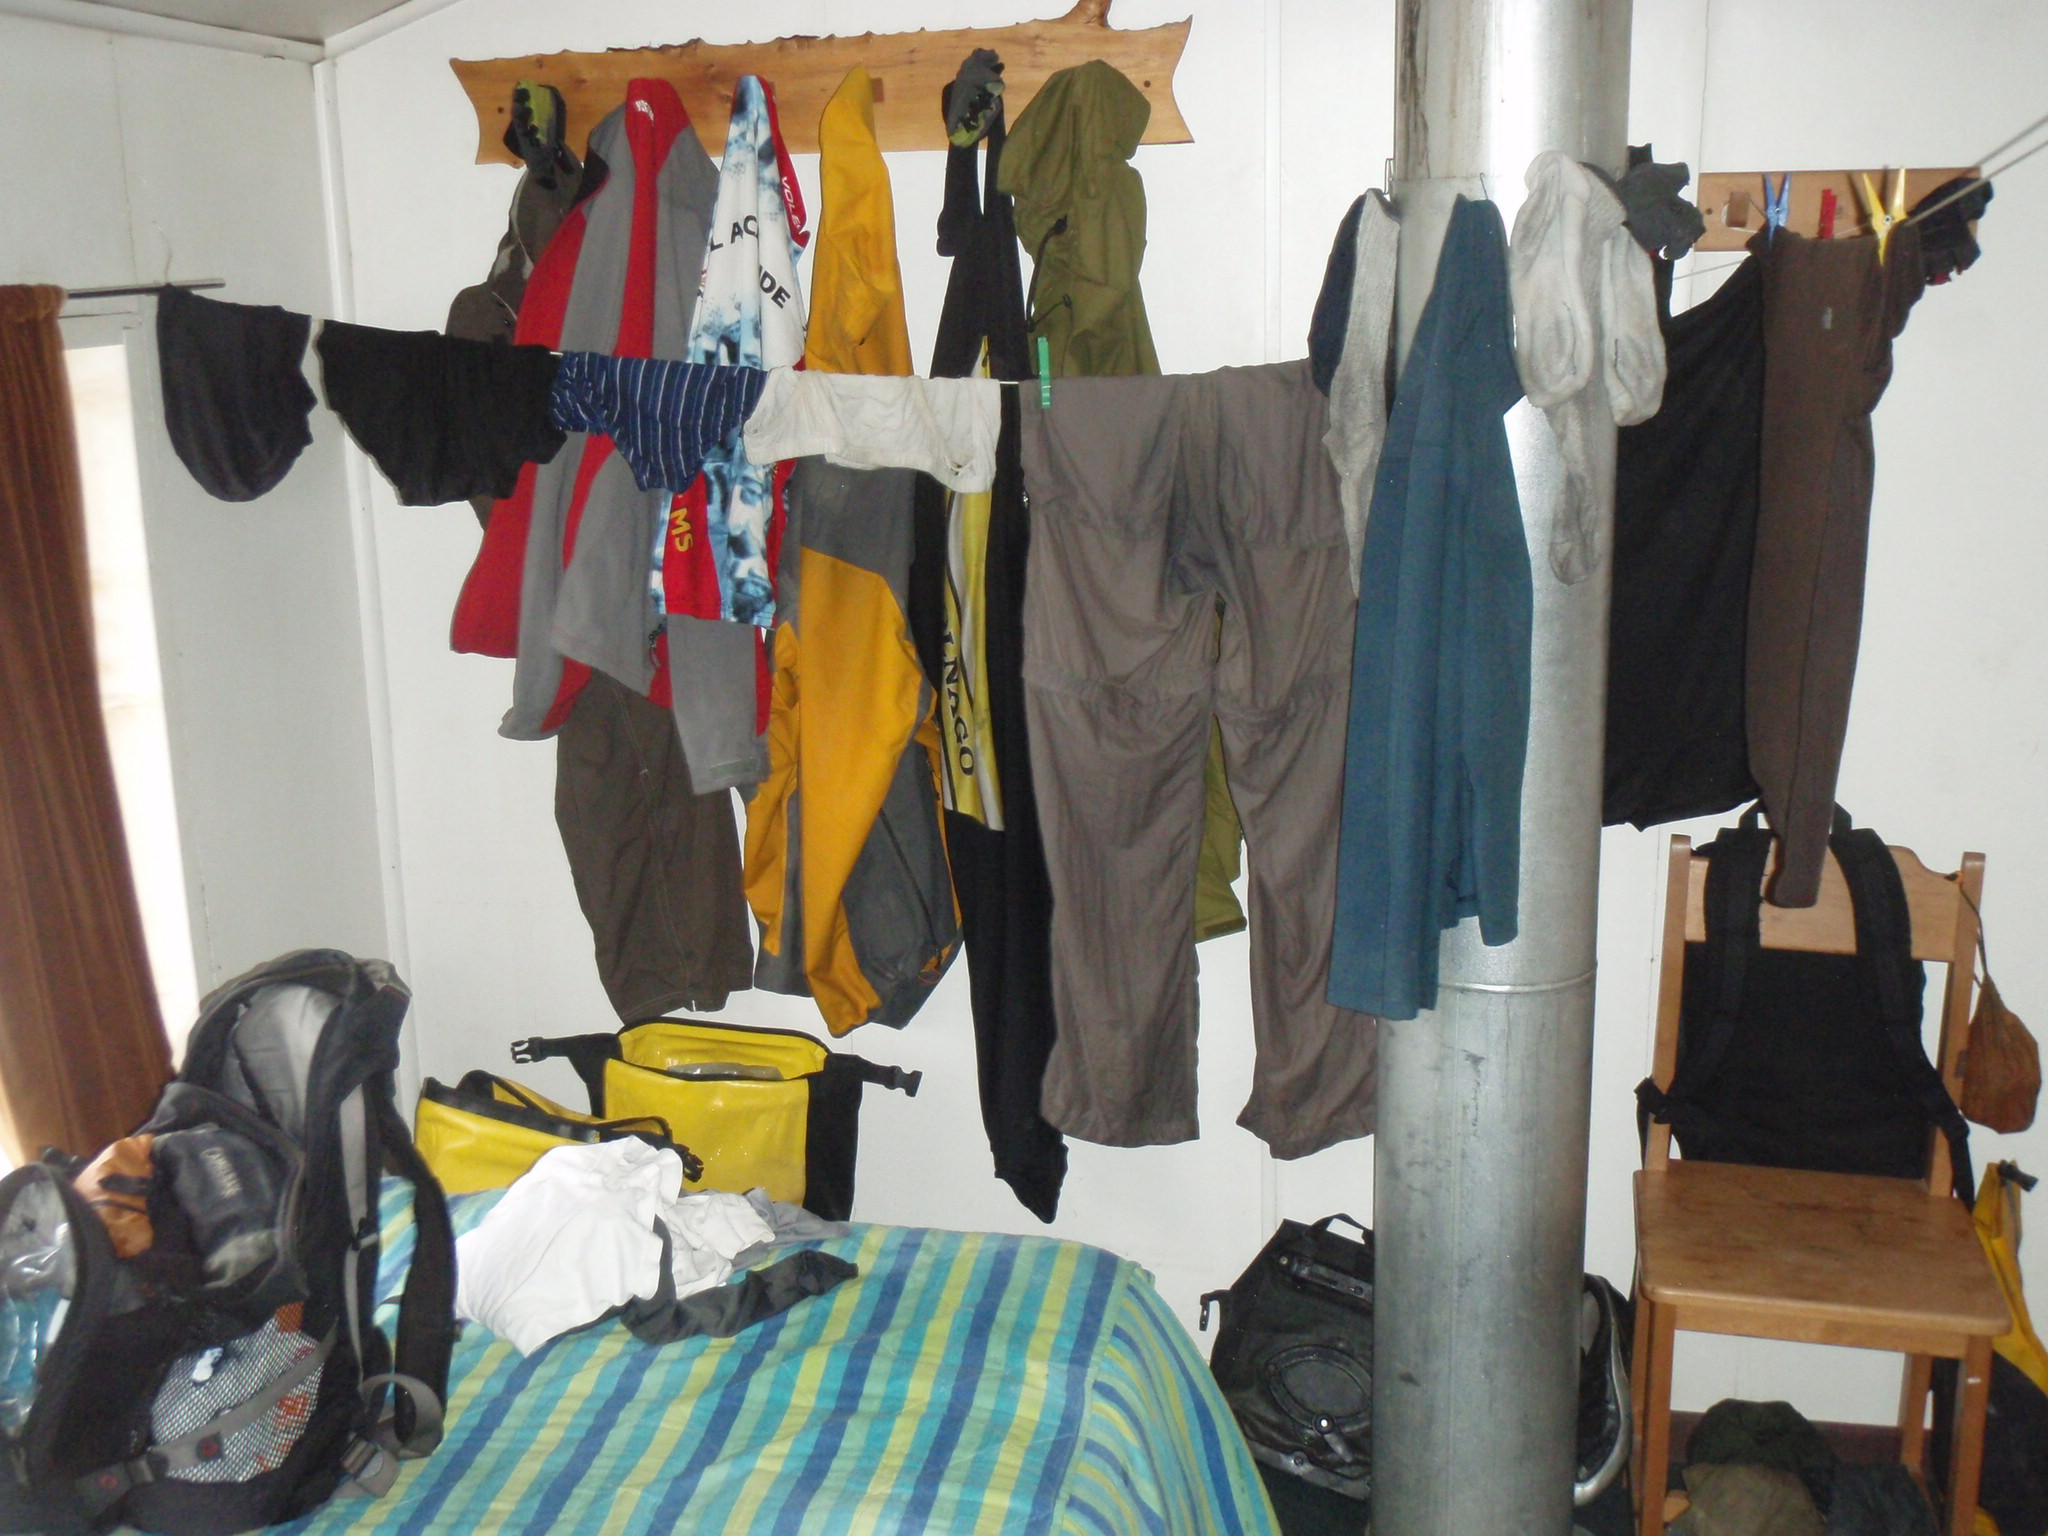 Hanging up cloths to dry - wet during the day, drying up over night, repeat